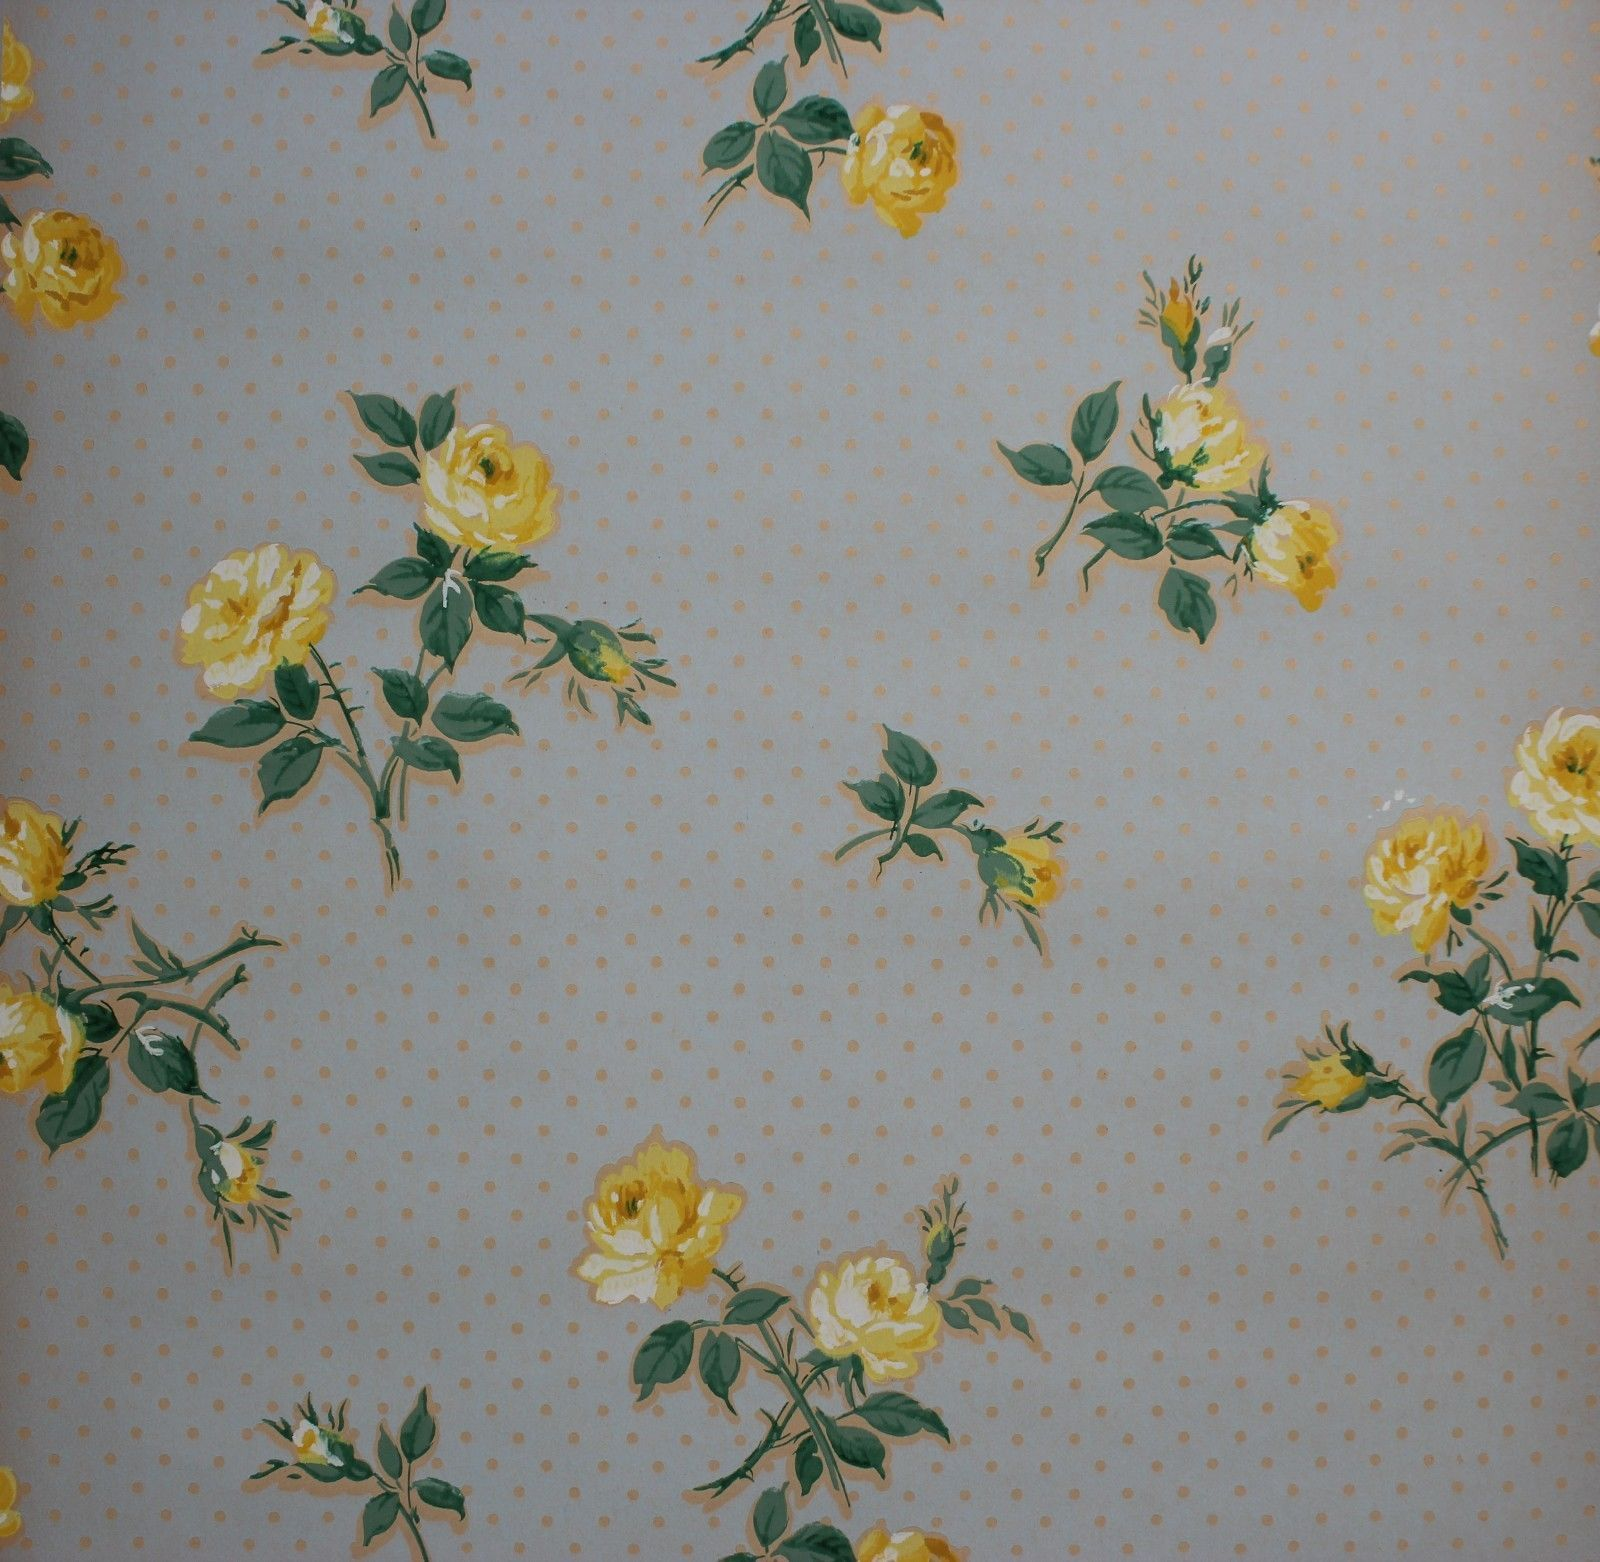 Vintage Wallpaper 1930 s Yellow Roses on Blue